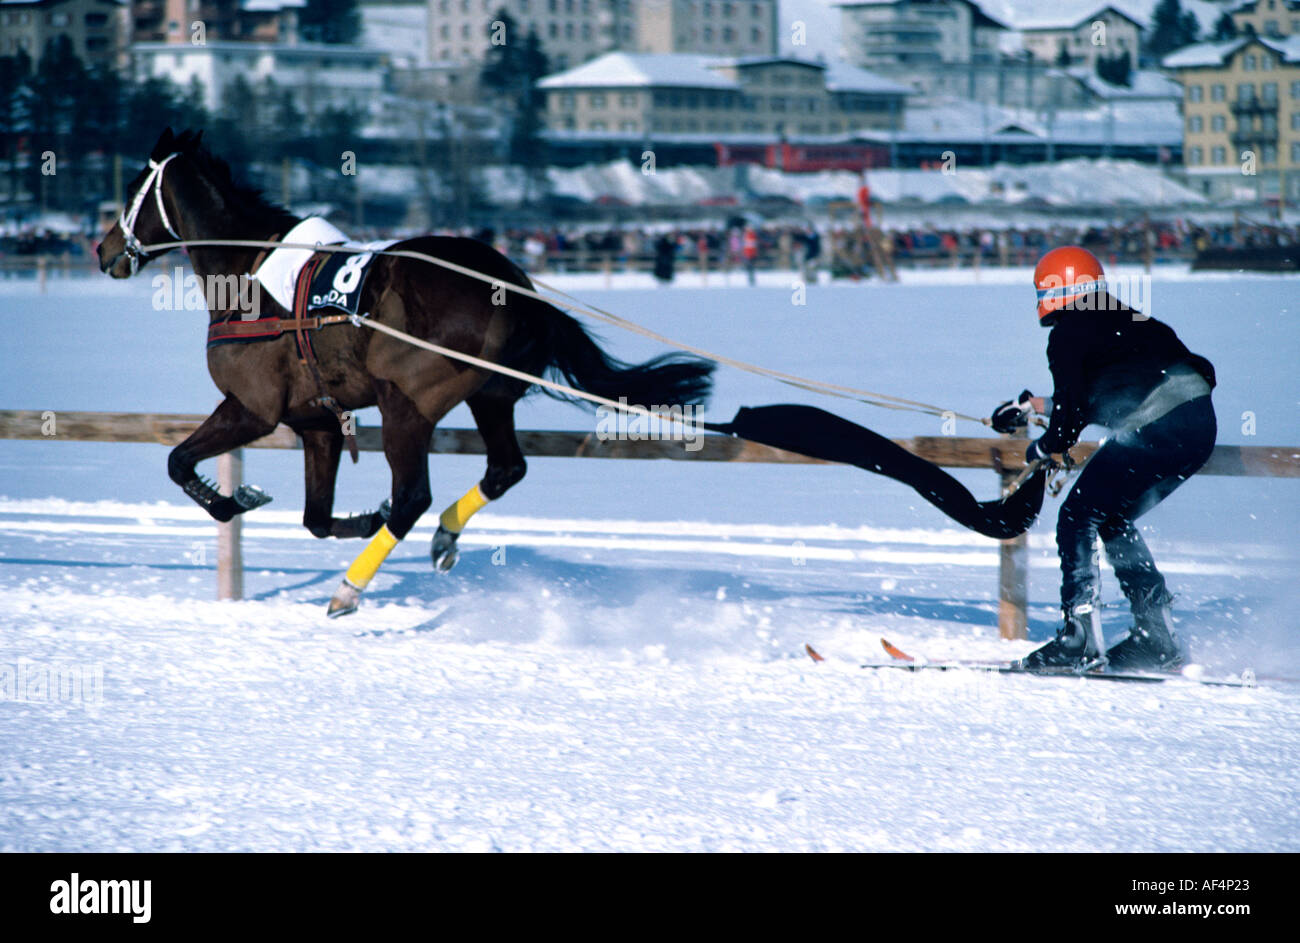 Horse and ski racer team on the race track on frozen lake at St Moritz The Engadin Switzerland - Stock Image